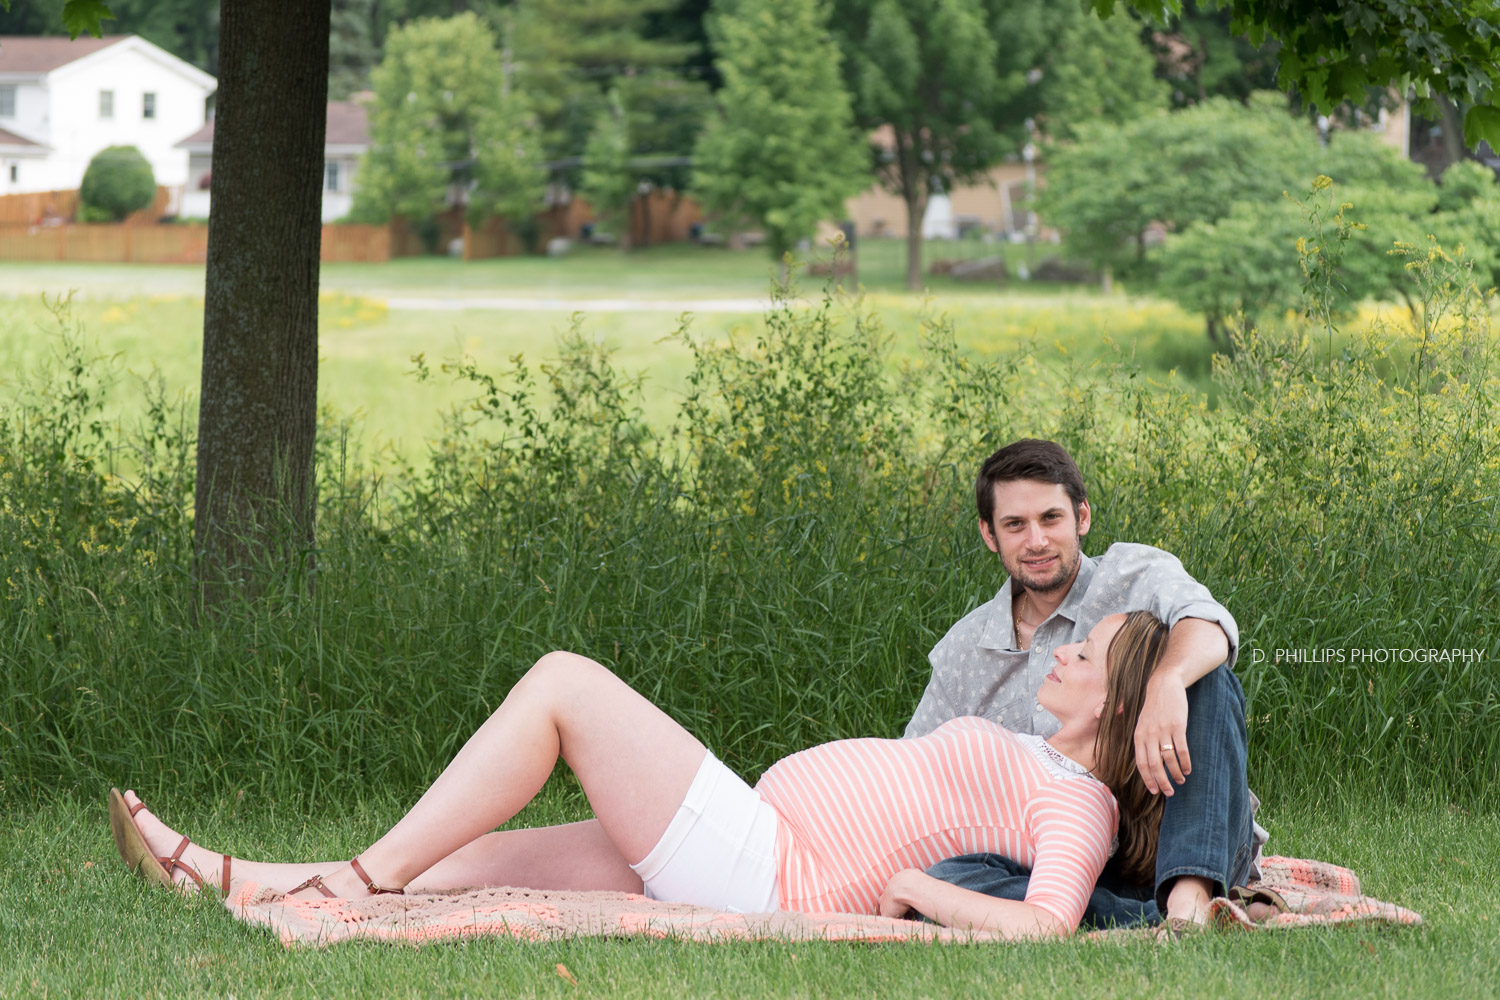 Maternity photographer   D. Phillips Photography in Clarksville, Tennessee